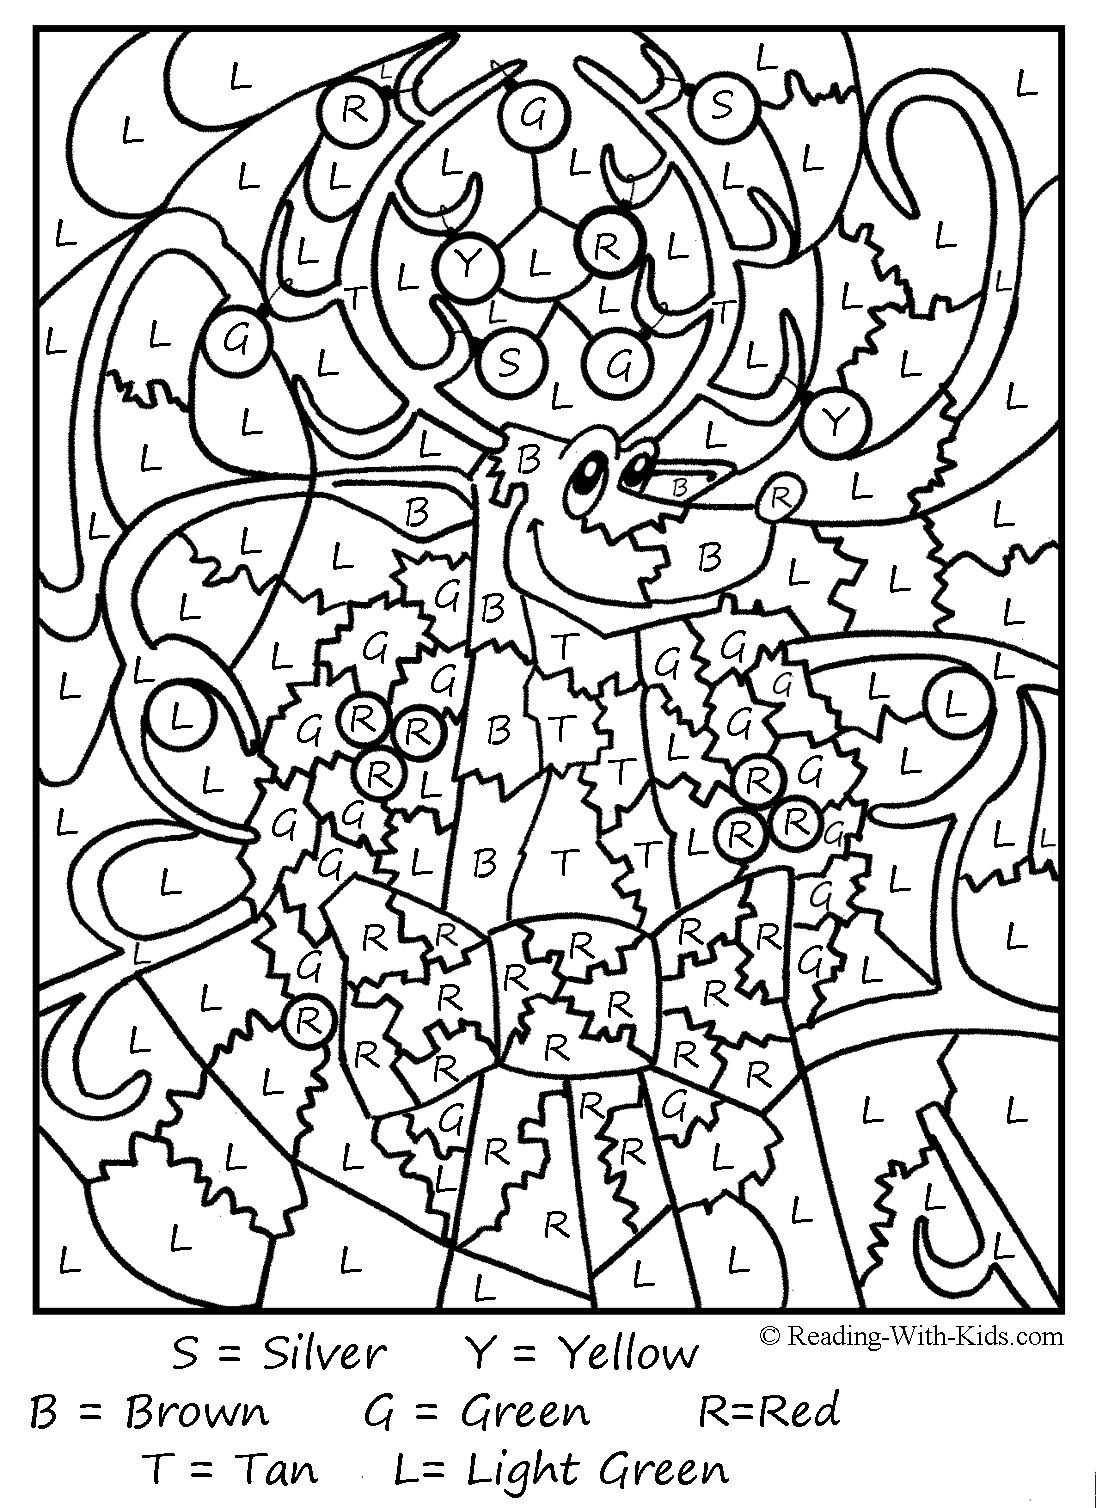 Colorbyletter and colorbynumber coloring pages are fun and – Christmas Color by Number Worksheets